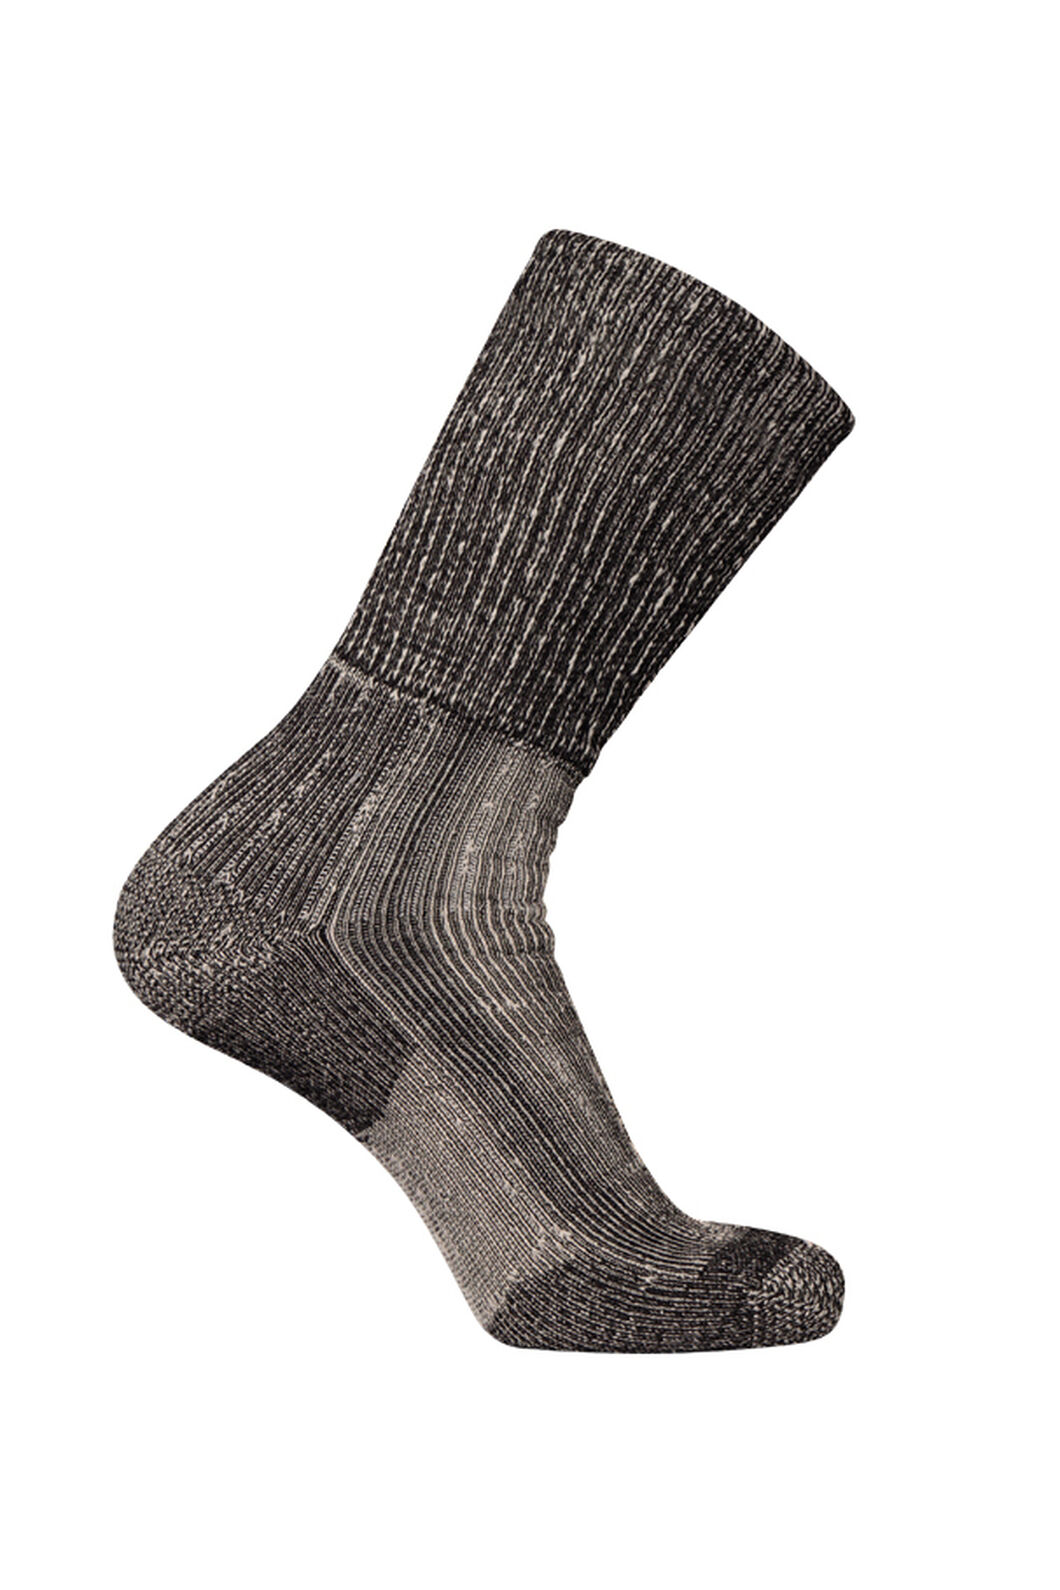 Macpac Winter Hiker Socks, Black, hi-res